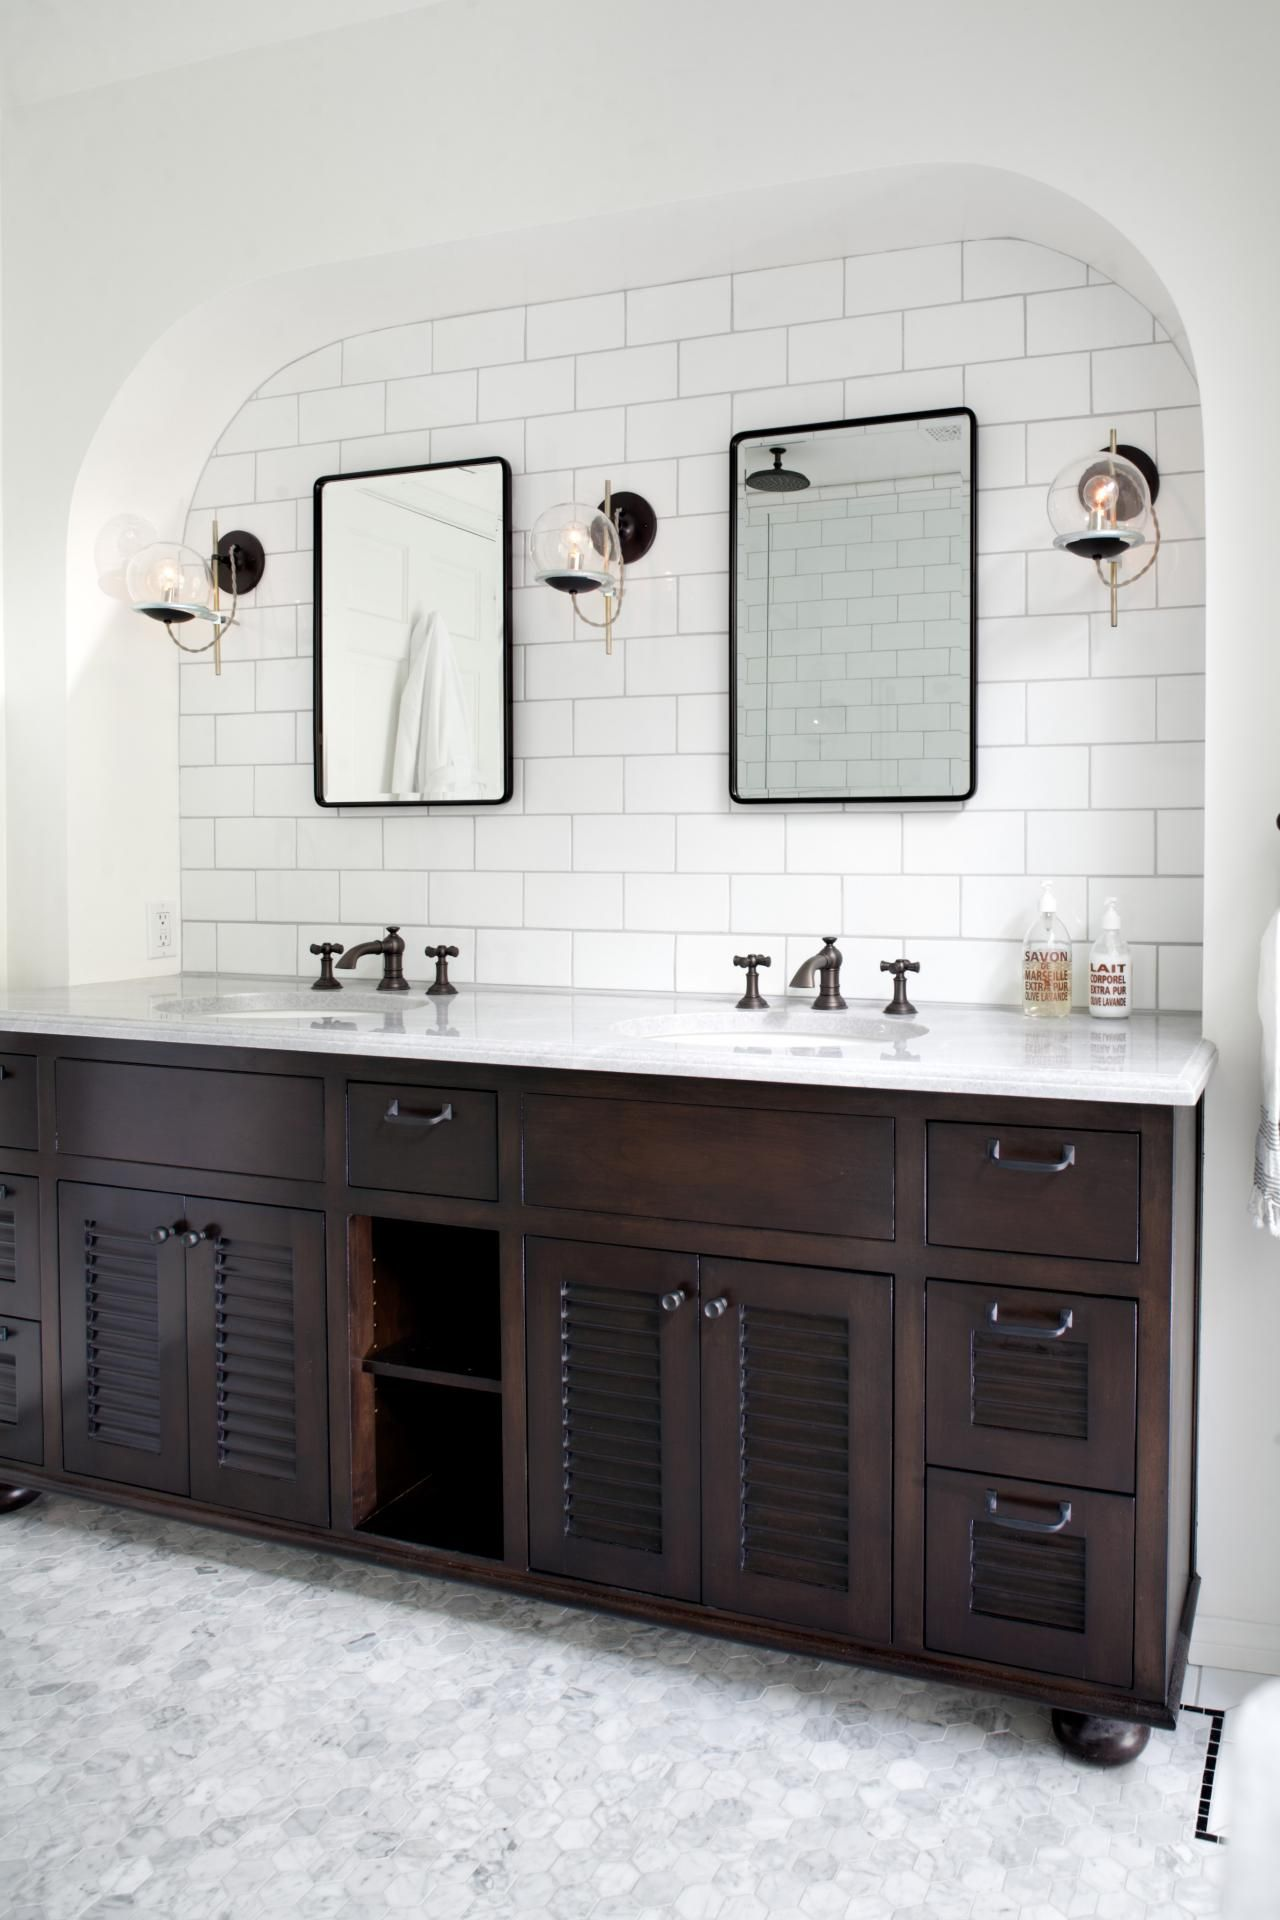 Attractive A Beautiful Arch Shape Frames The White Tile Wall Above This Double Vanity. Dark  Wooden